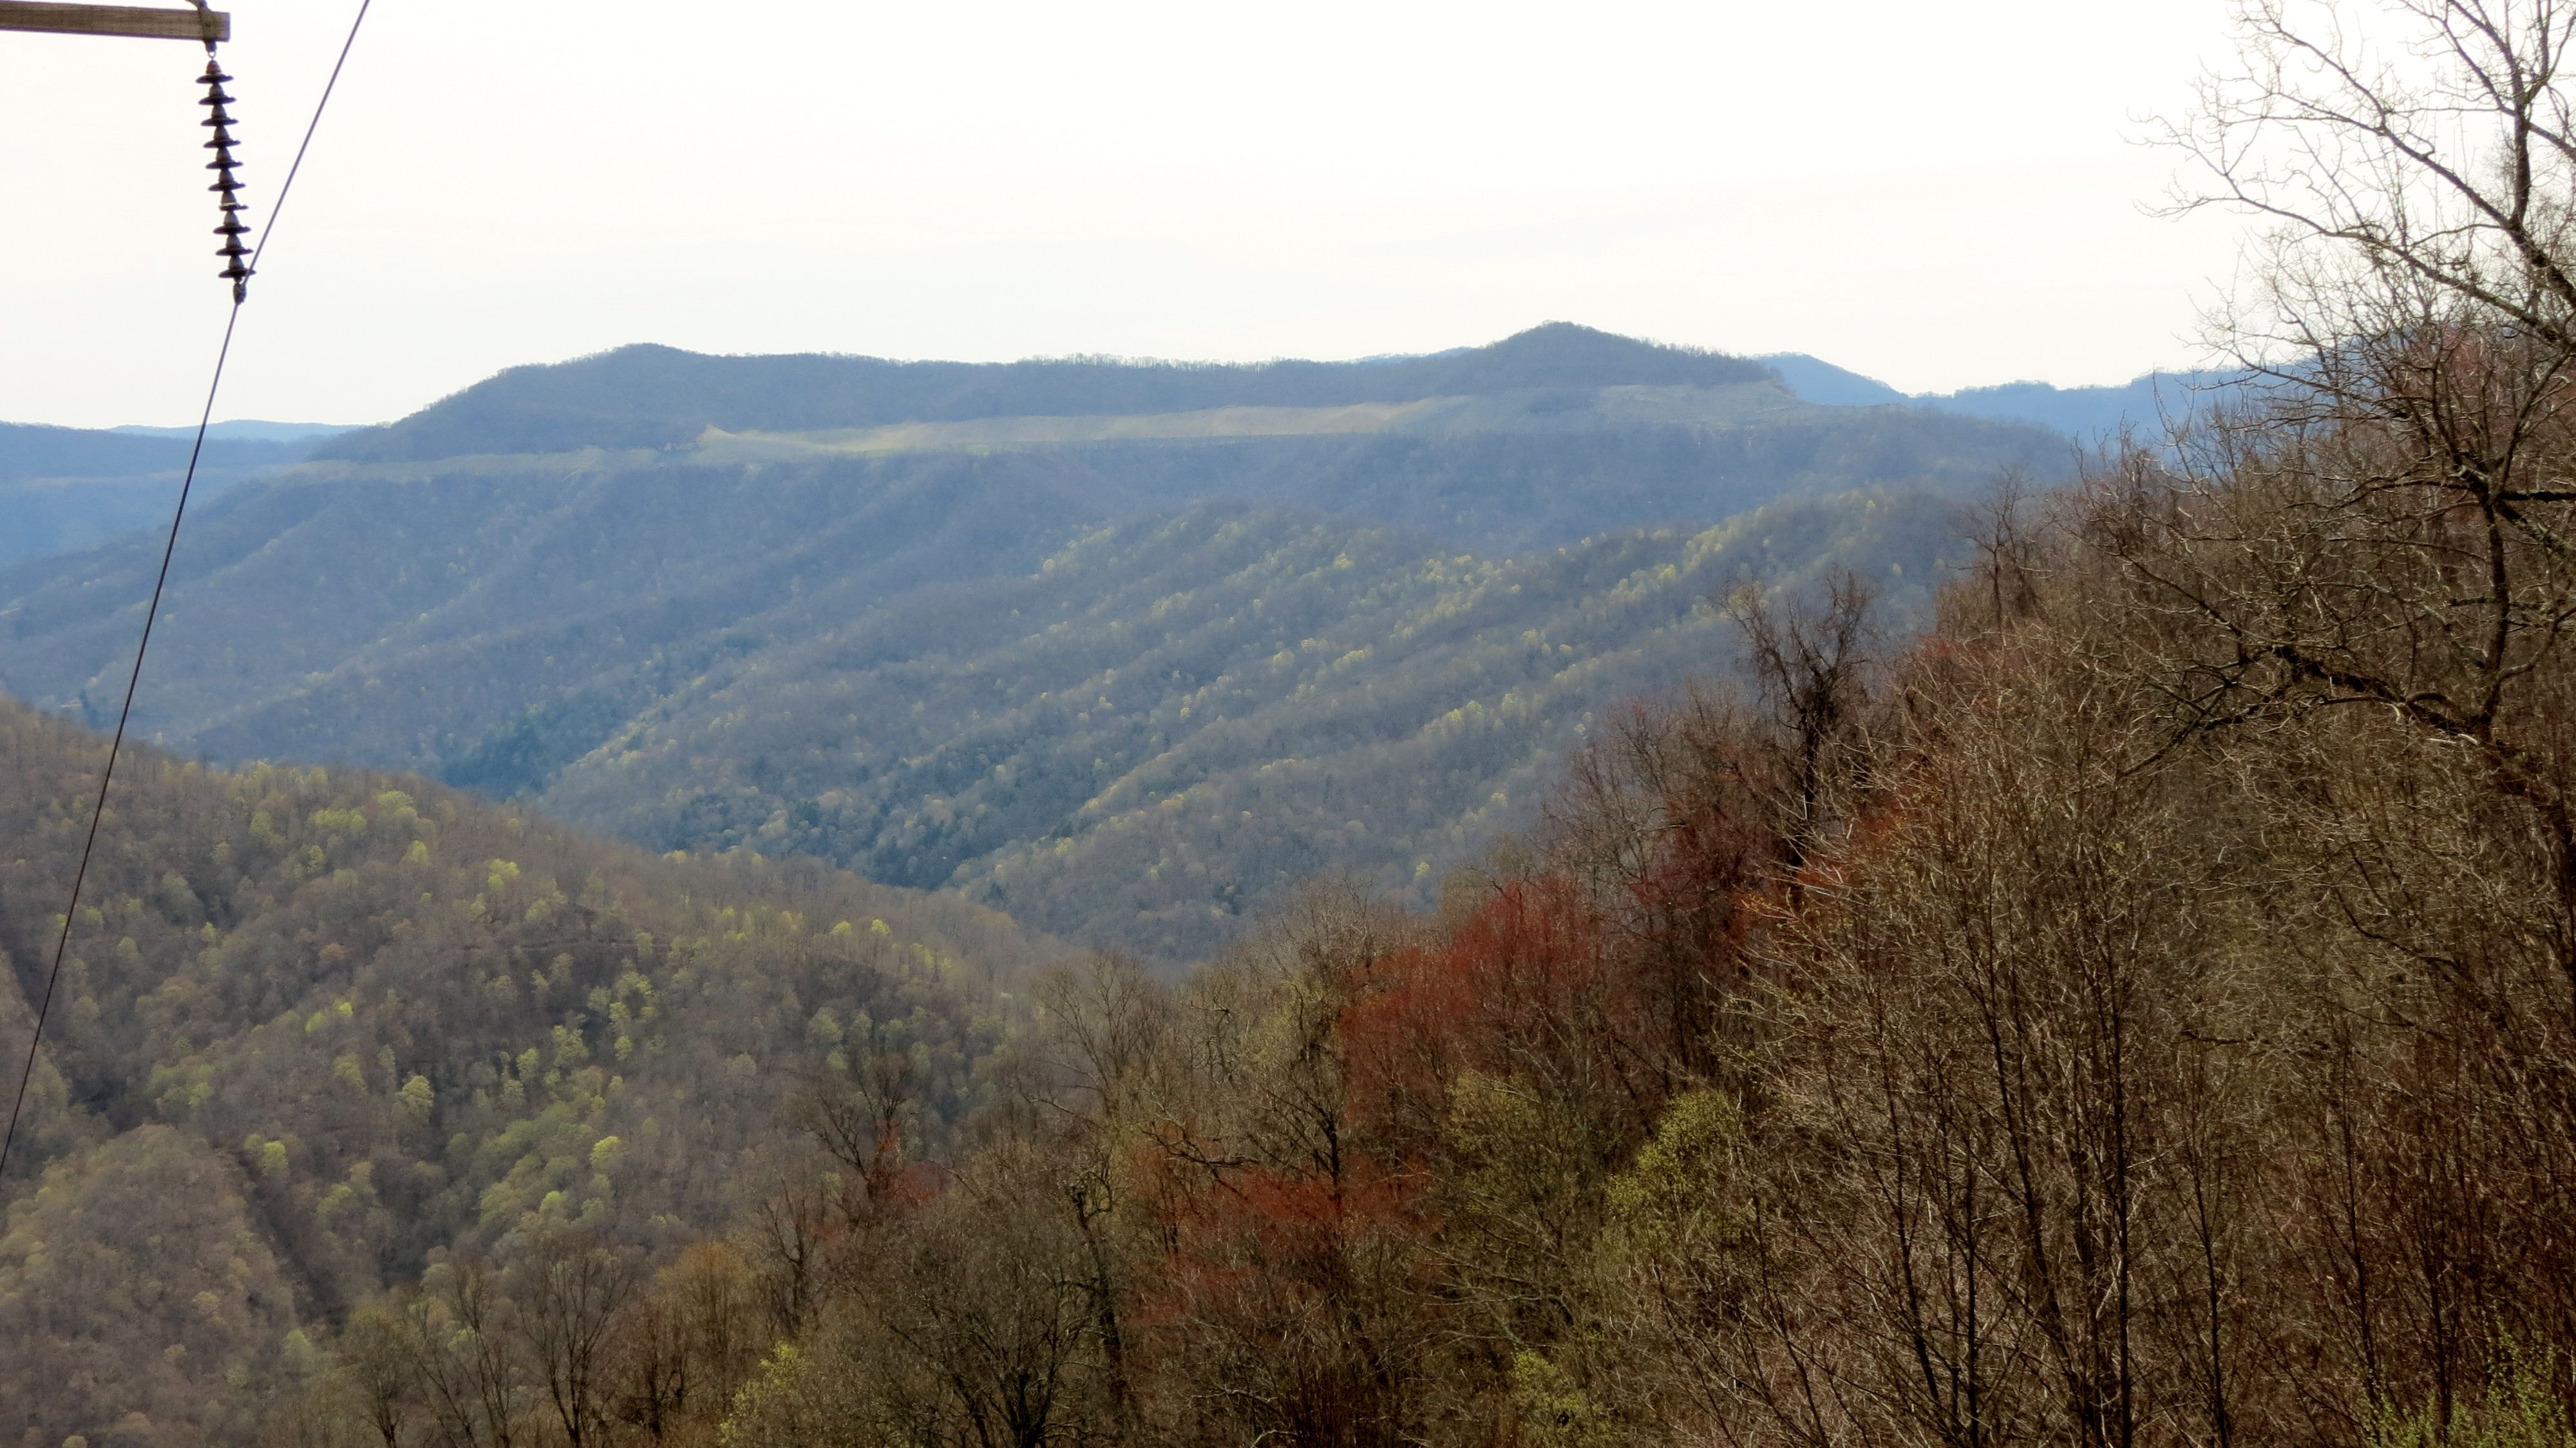 Pin by Moxie Karasek on Harlan County Campground and Sites ...